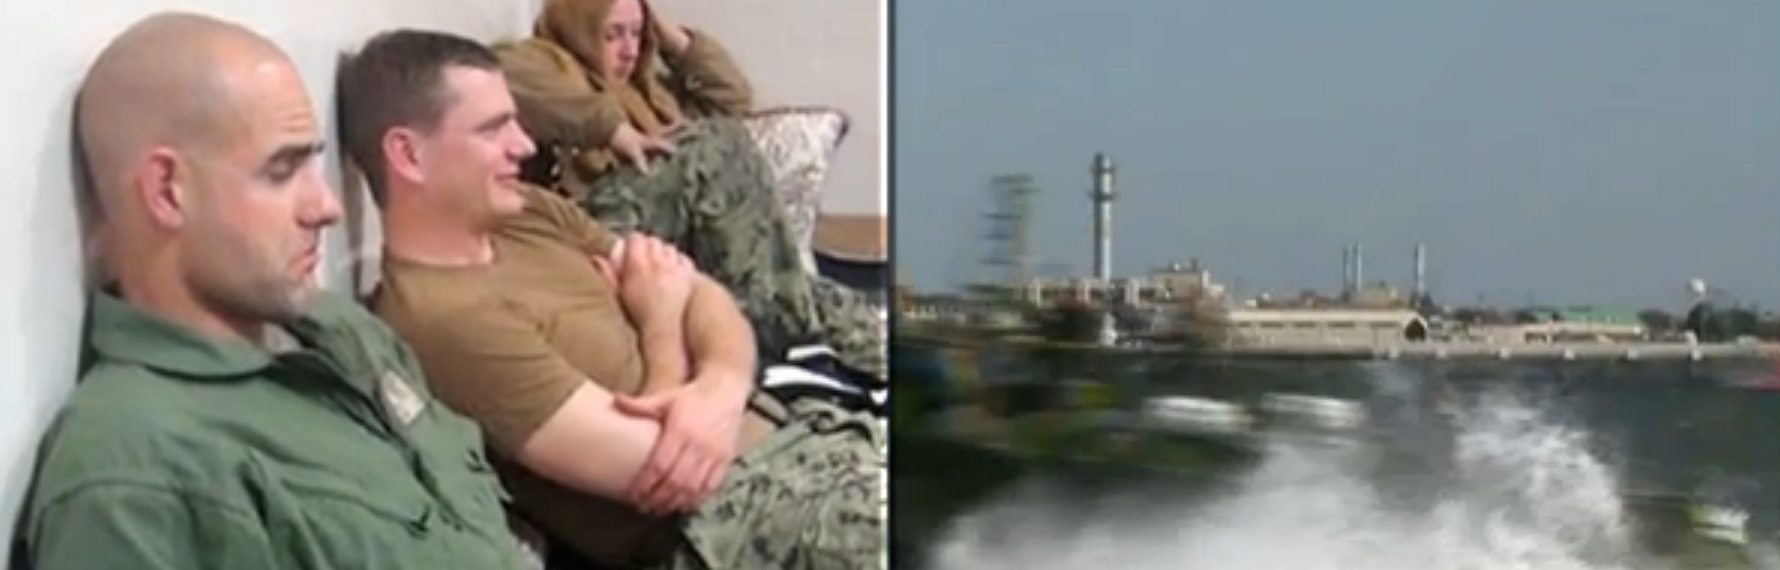 U.S. Navy Punishes Additional Sailors Over Iran Capture In January Featured